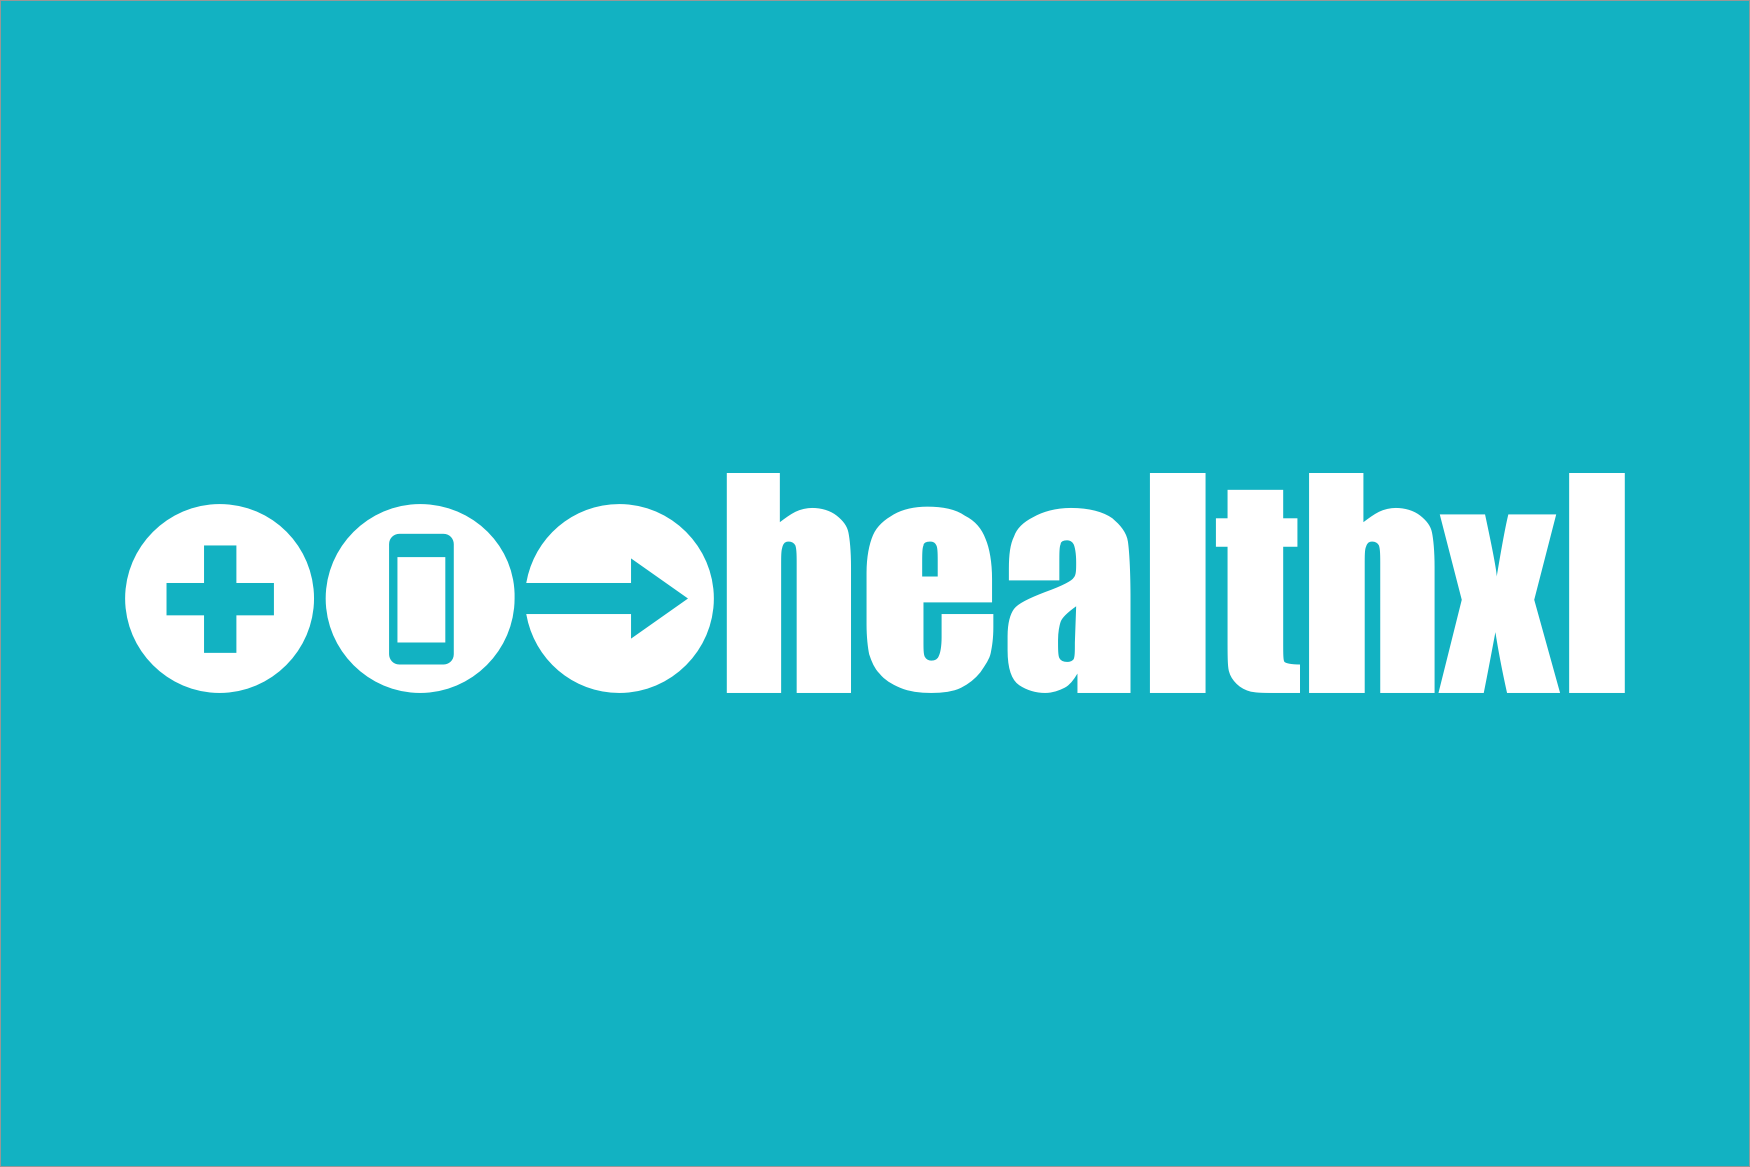 Healthcare 2020 - Virtually a Bot Hub? Virtual Health Assistants Report Featuring Conversa Health - Mar. 29, 2019